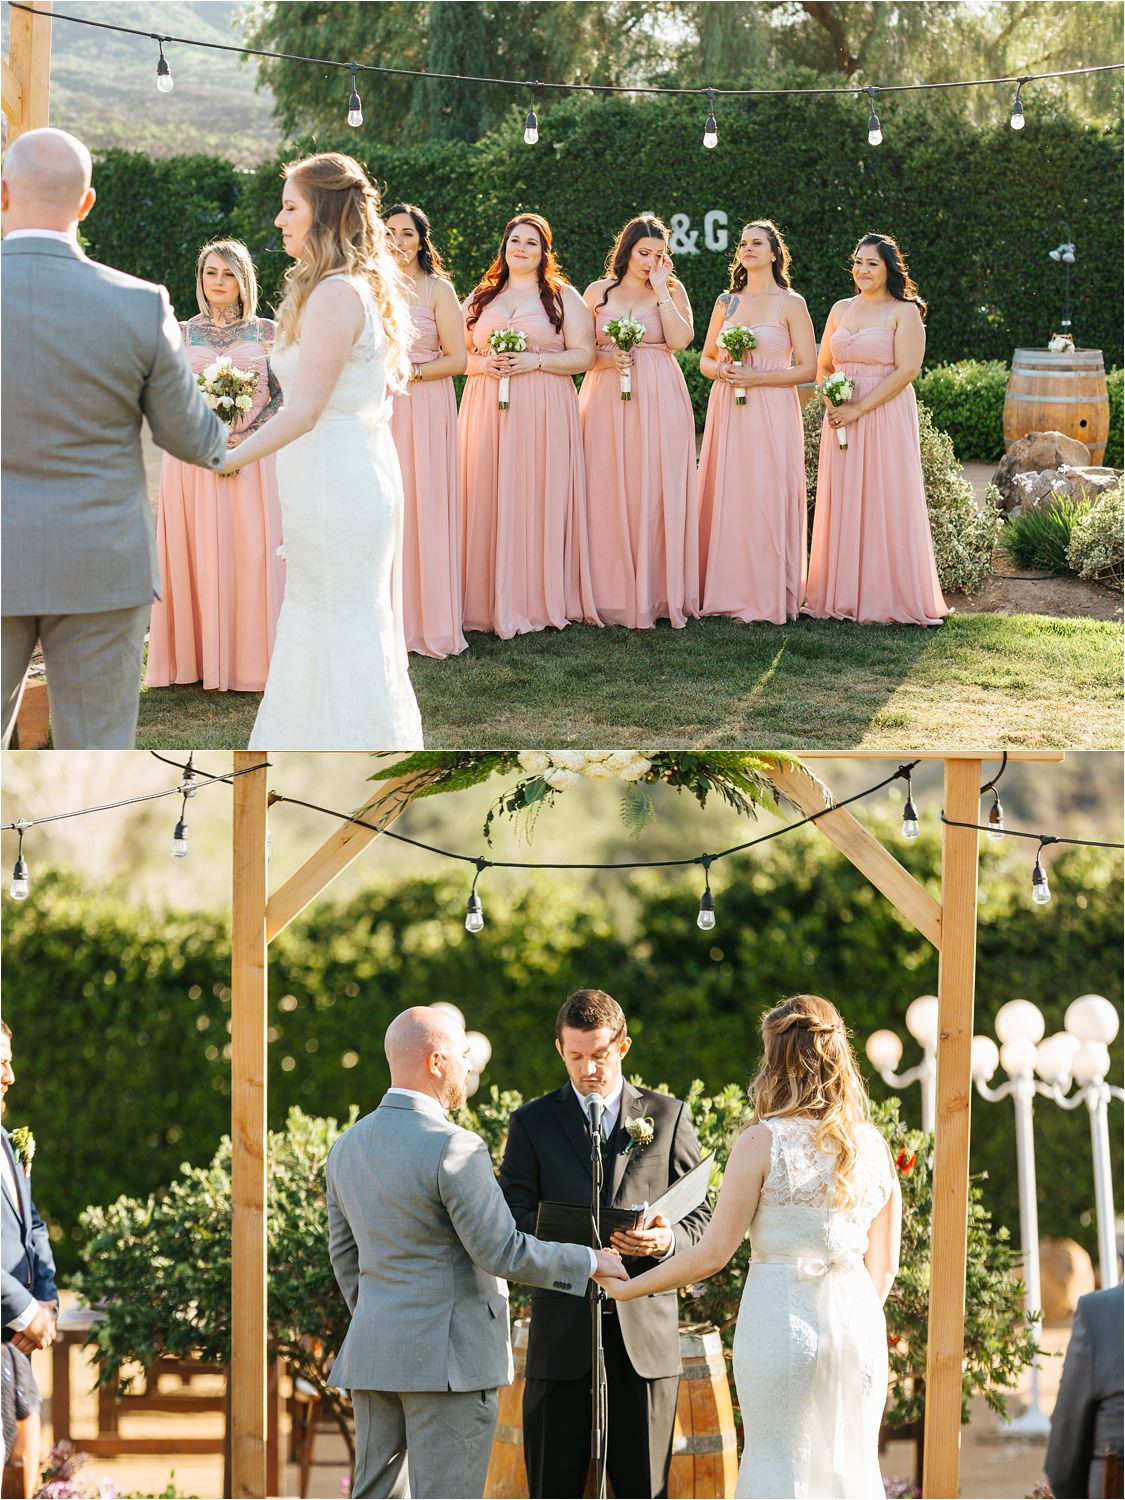 Lake Elsinore Dreamy Backyard Wedding - https://brittneyhannonphotography.com